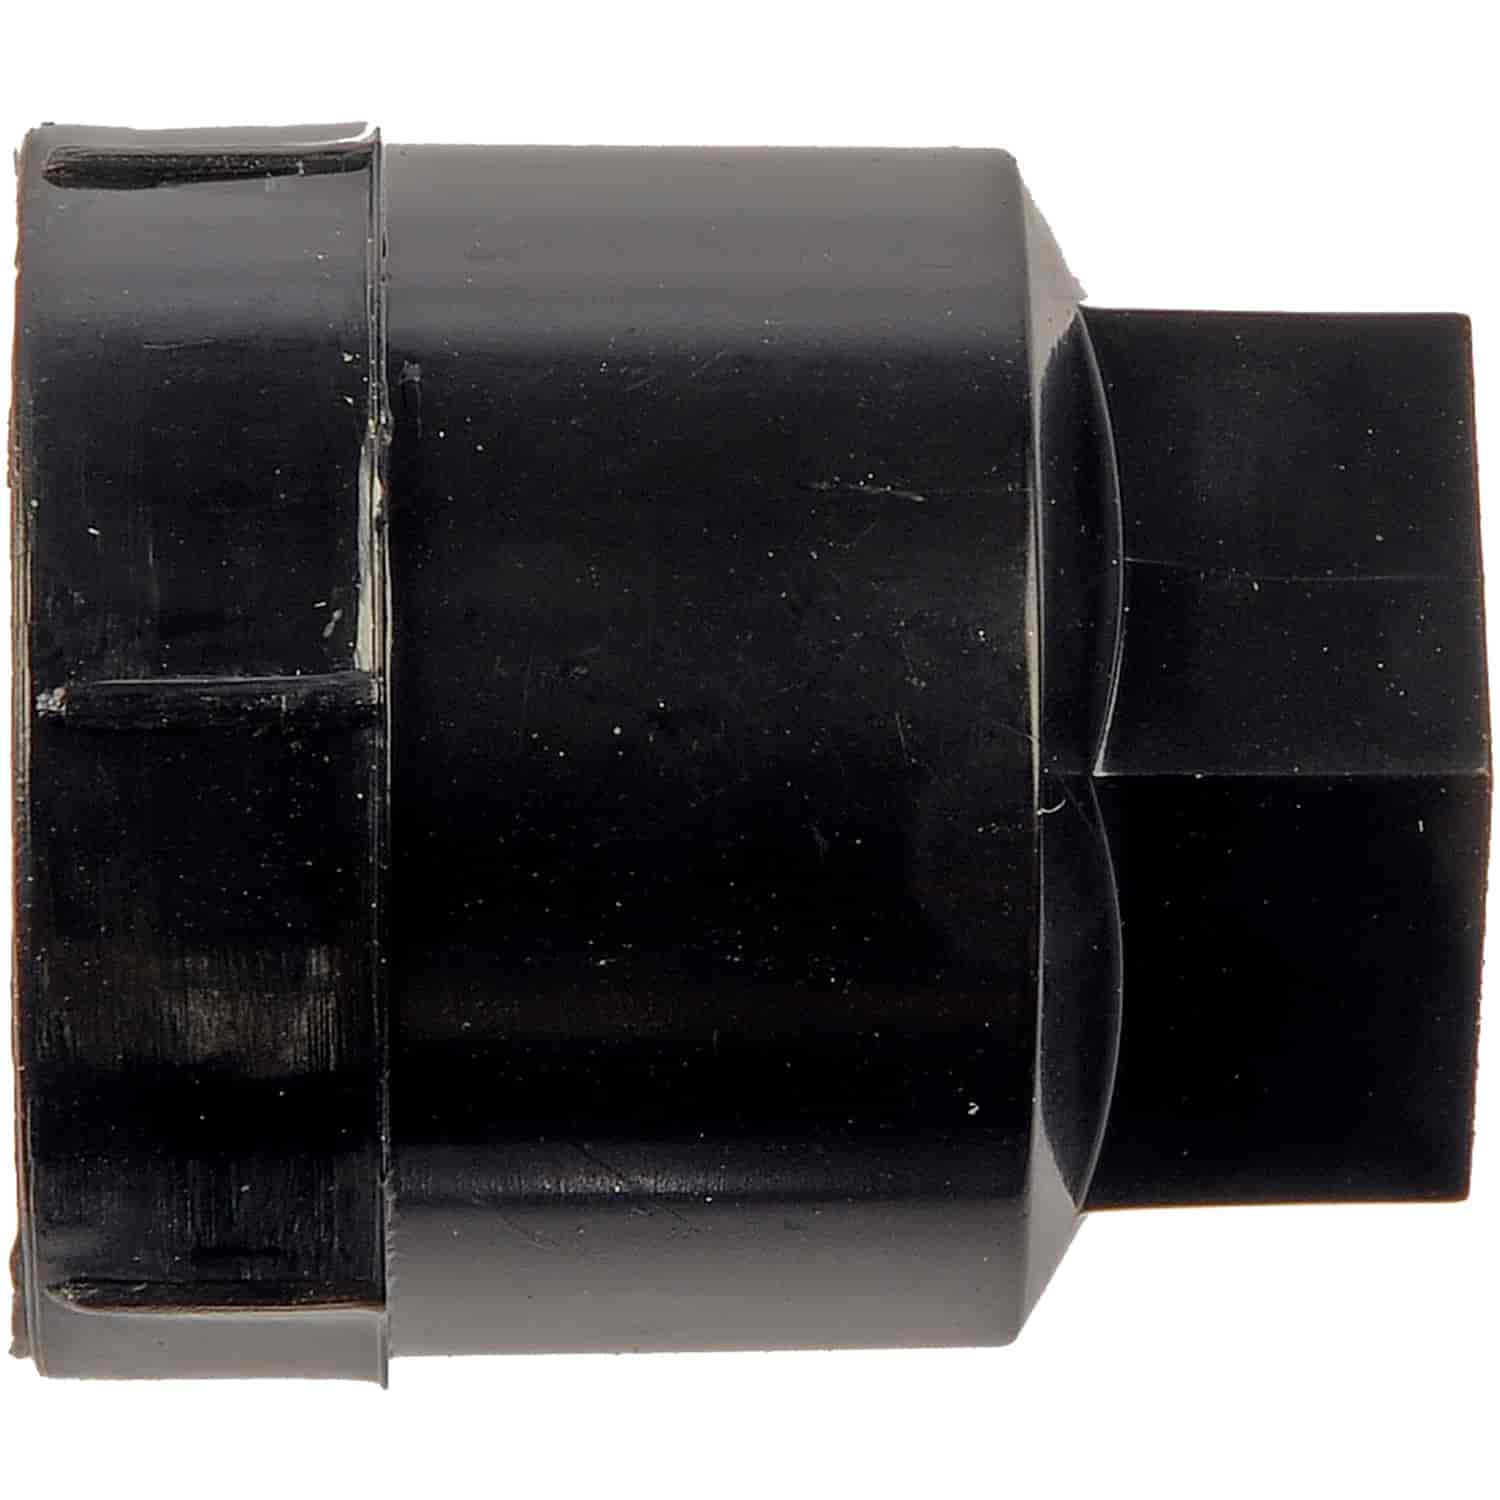 Dorman Products 611-605.1